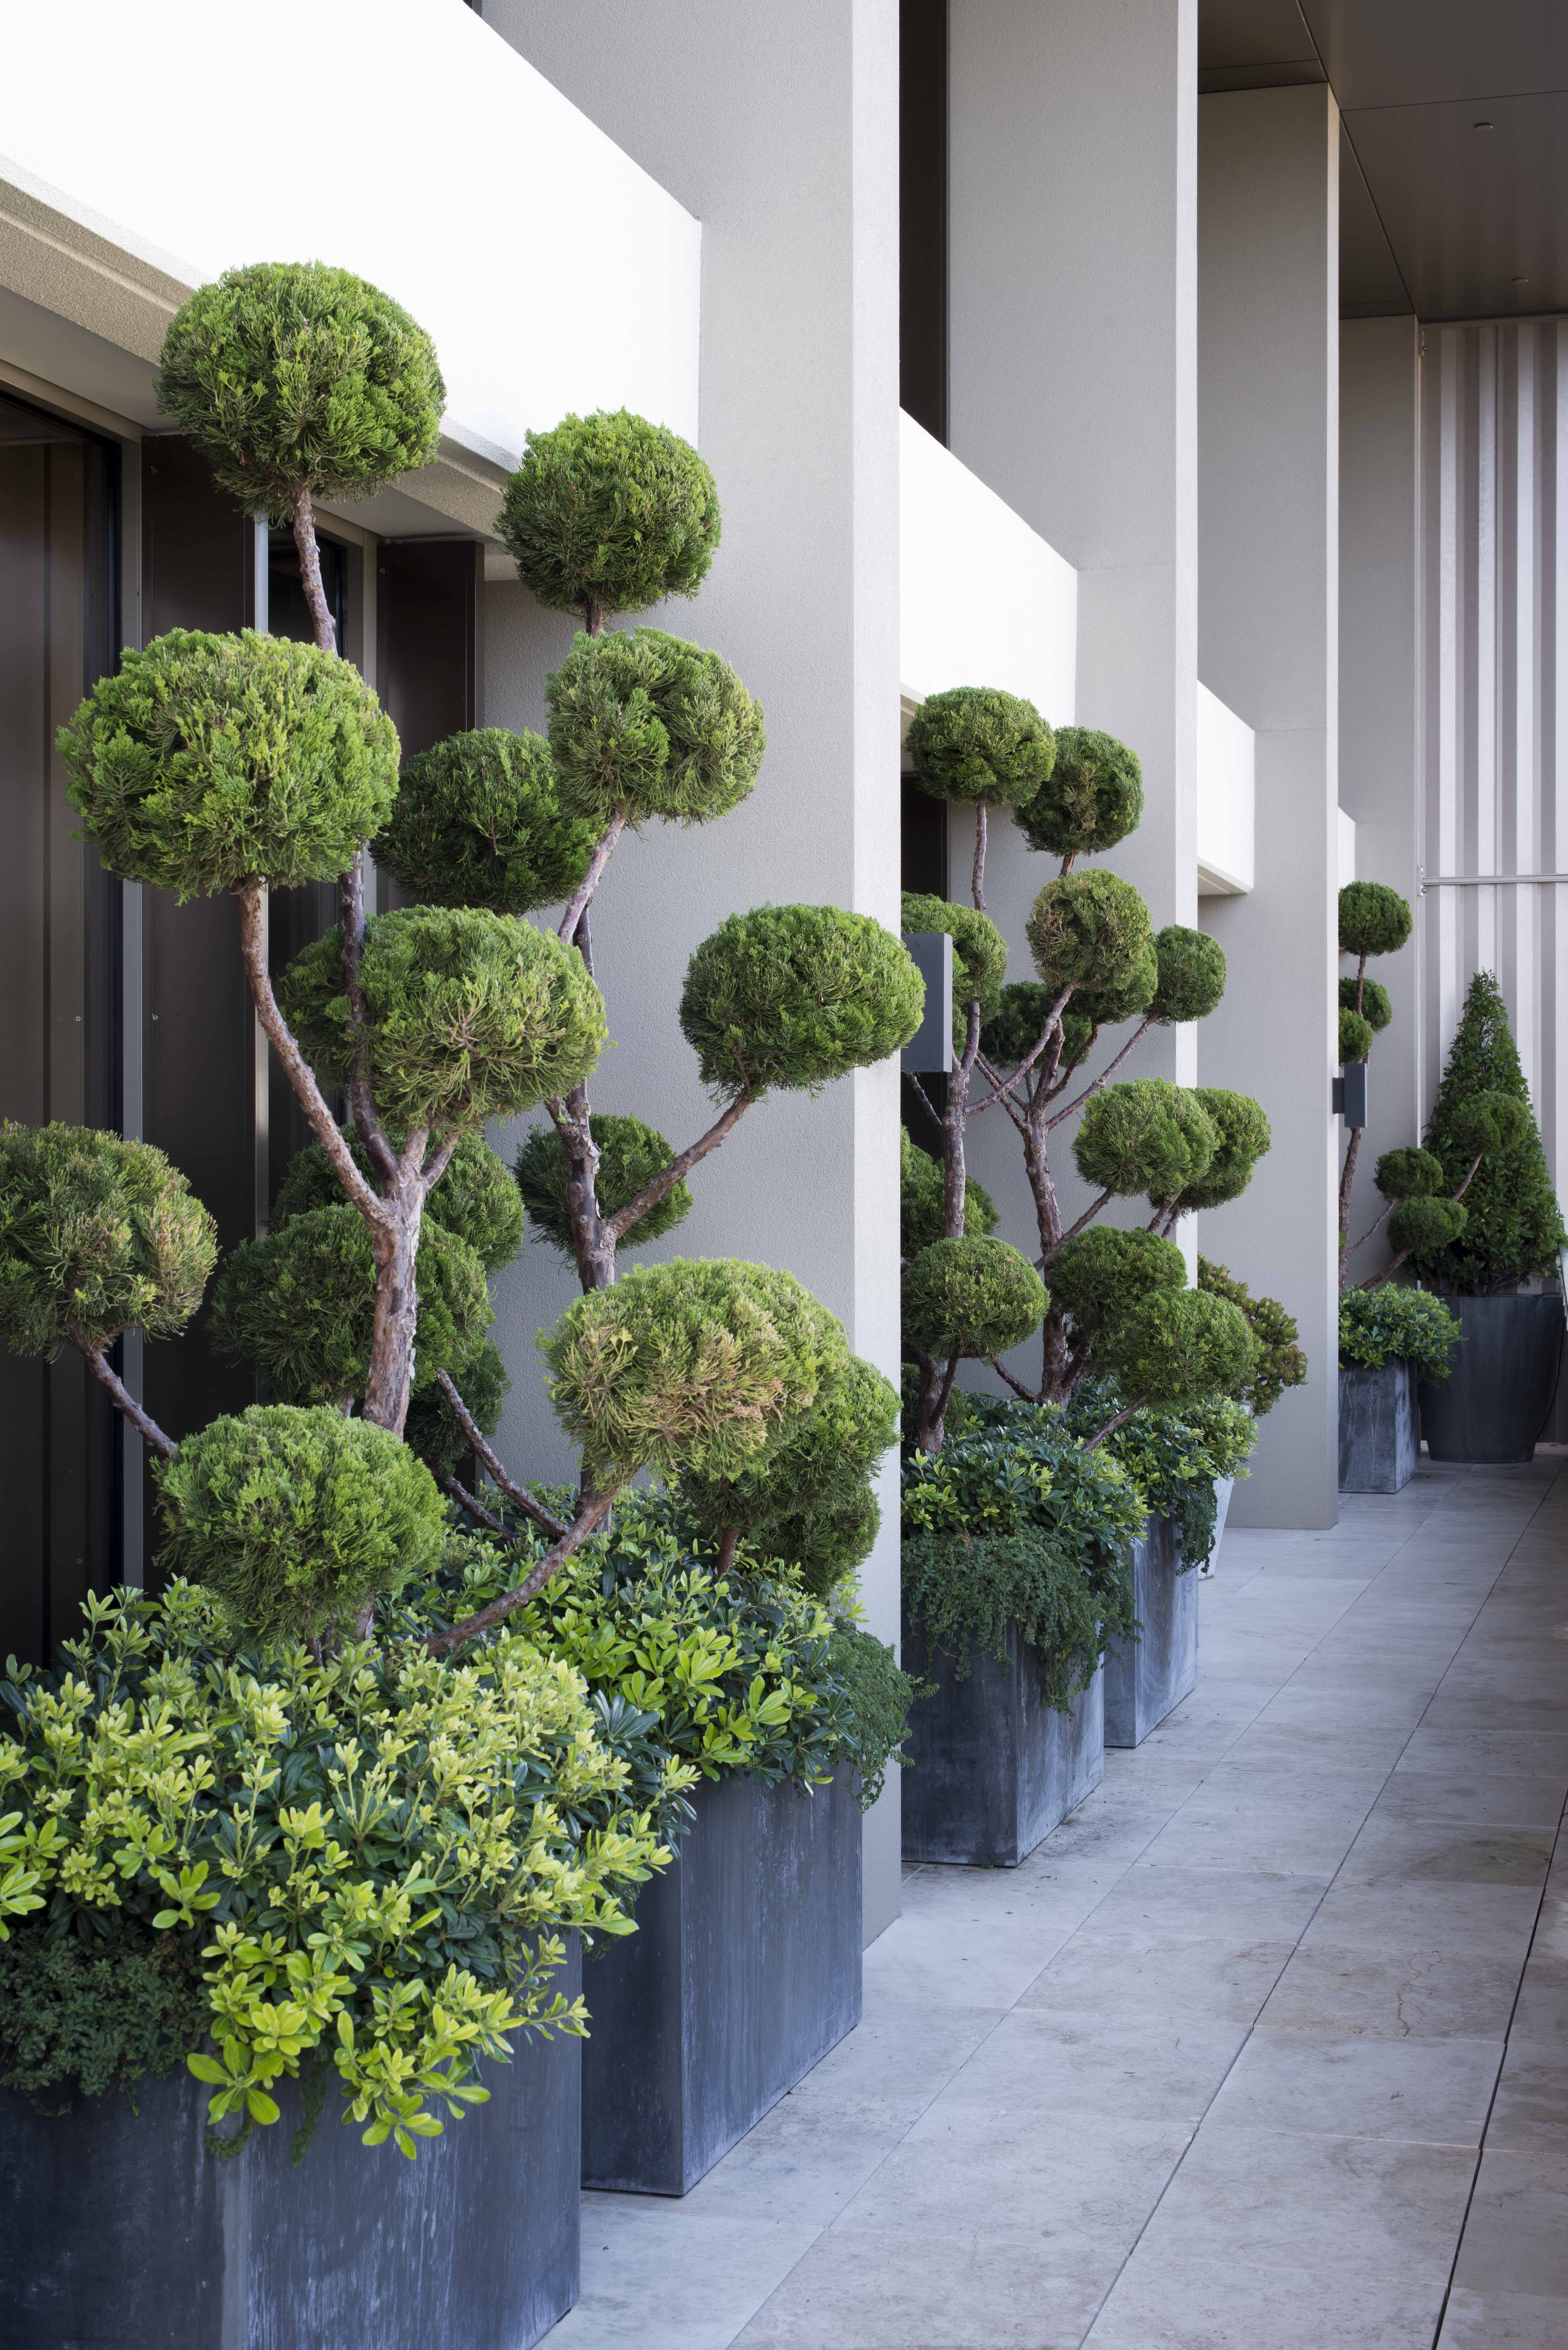 Balcony Design In The City Cloud Tree Adds Drama To Any Space Garden Design Front Garden Architectural Plants